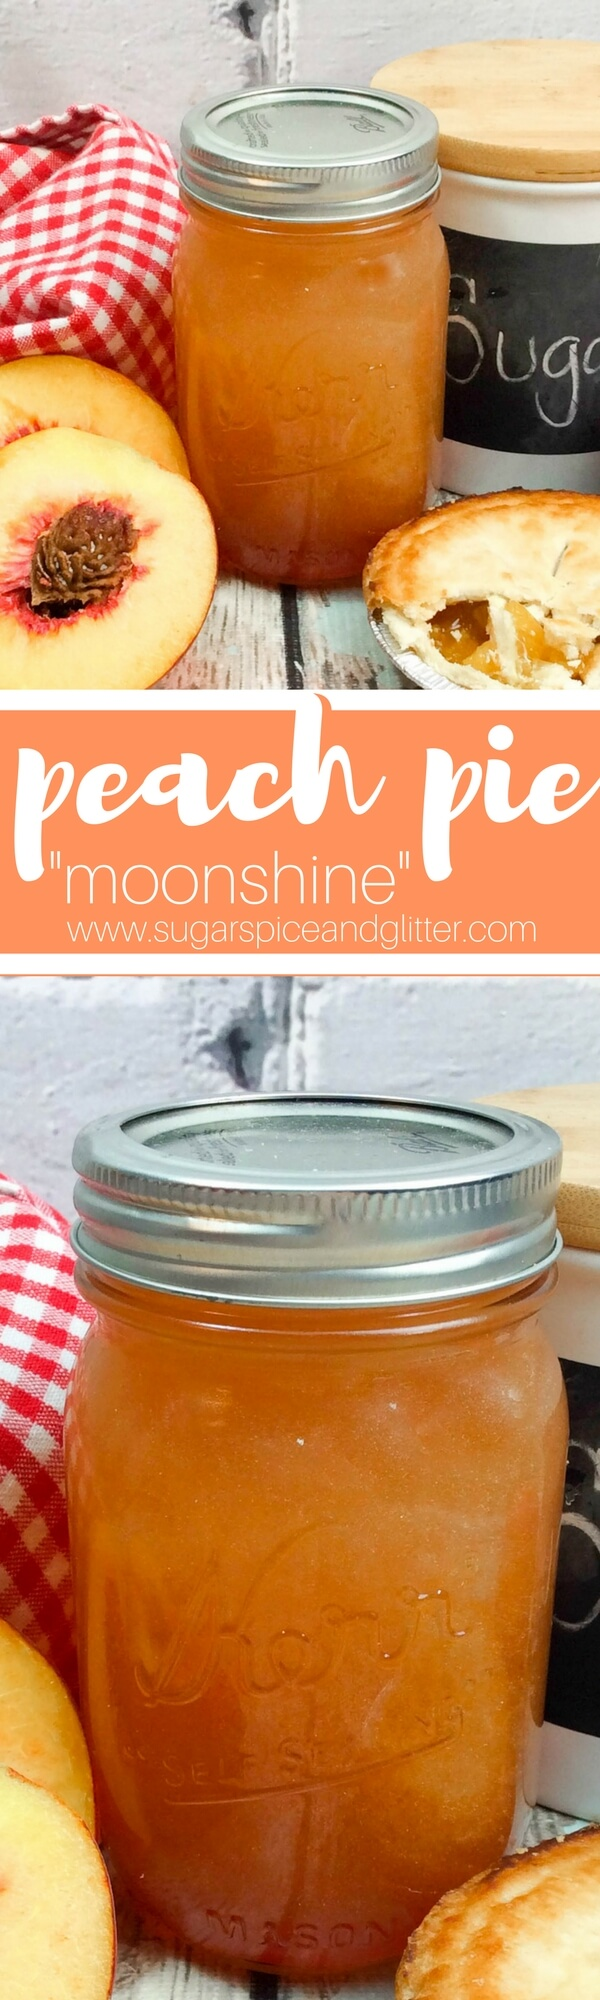 Peach Pie Moonshine Have You Tried The New Homemade Trend This Flavored Vodka